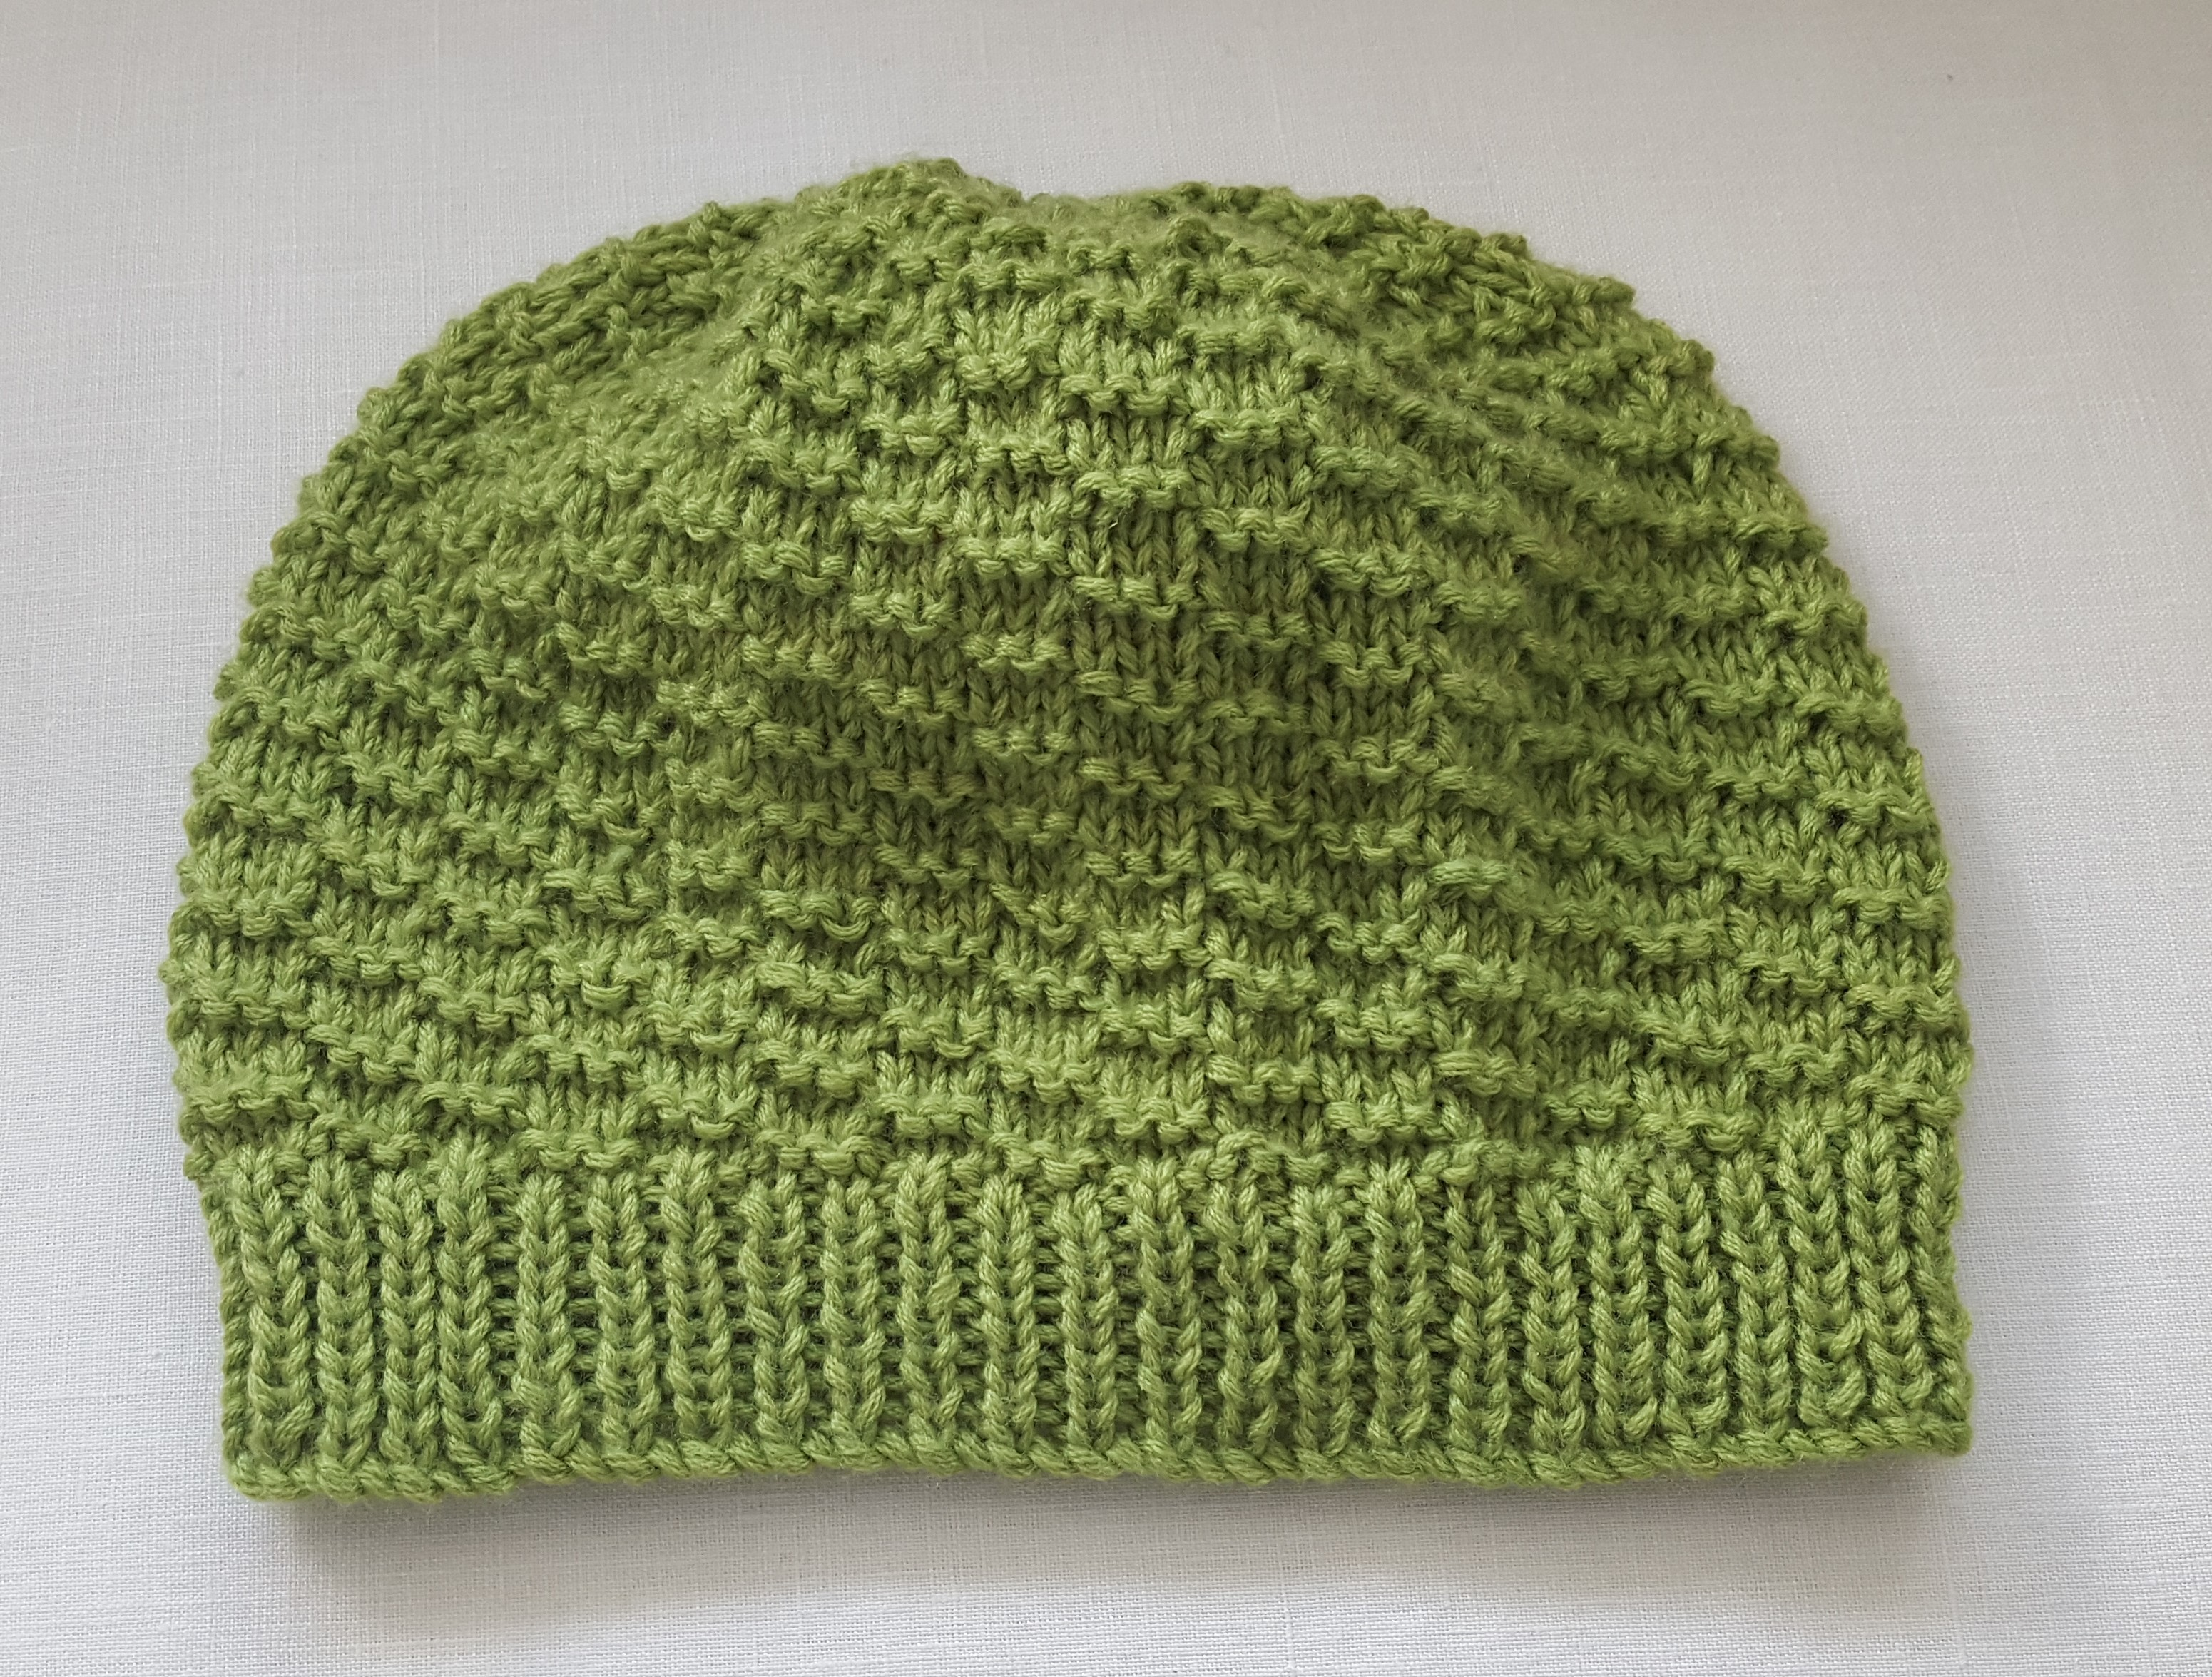 Knitting Patterns Online - Knitting Patterns for Beanies ...